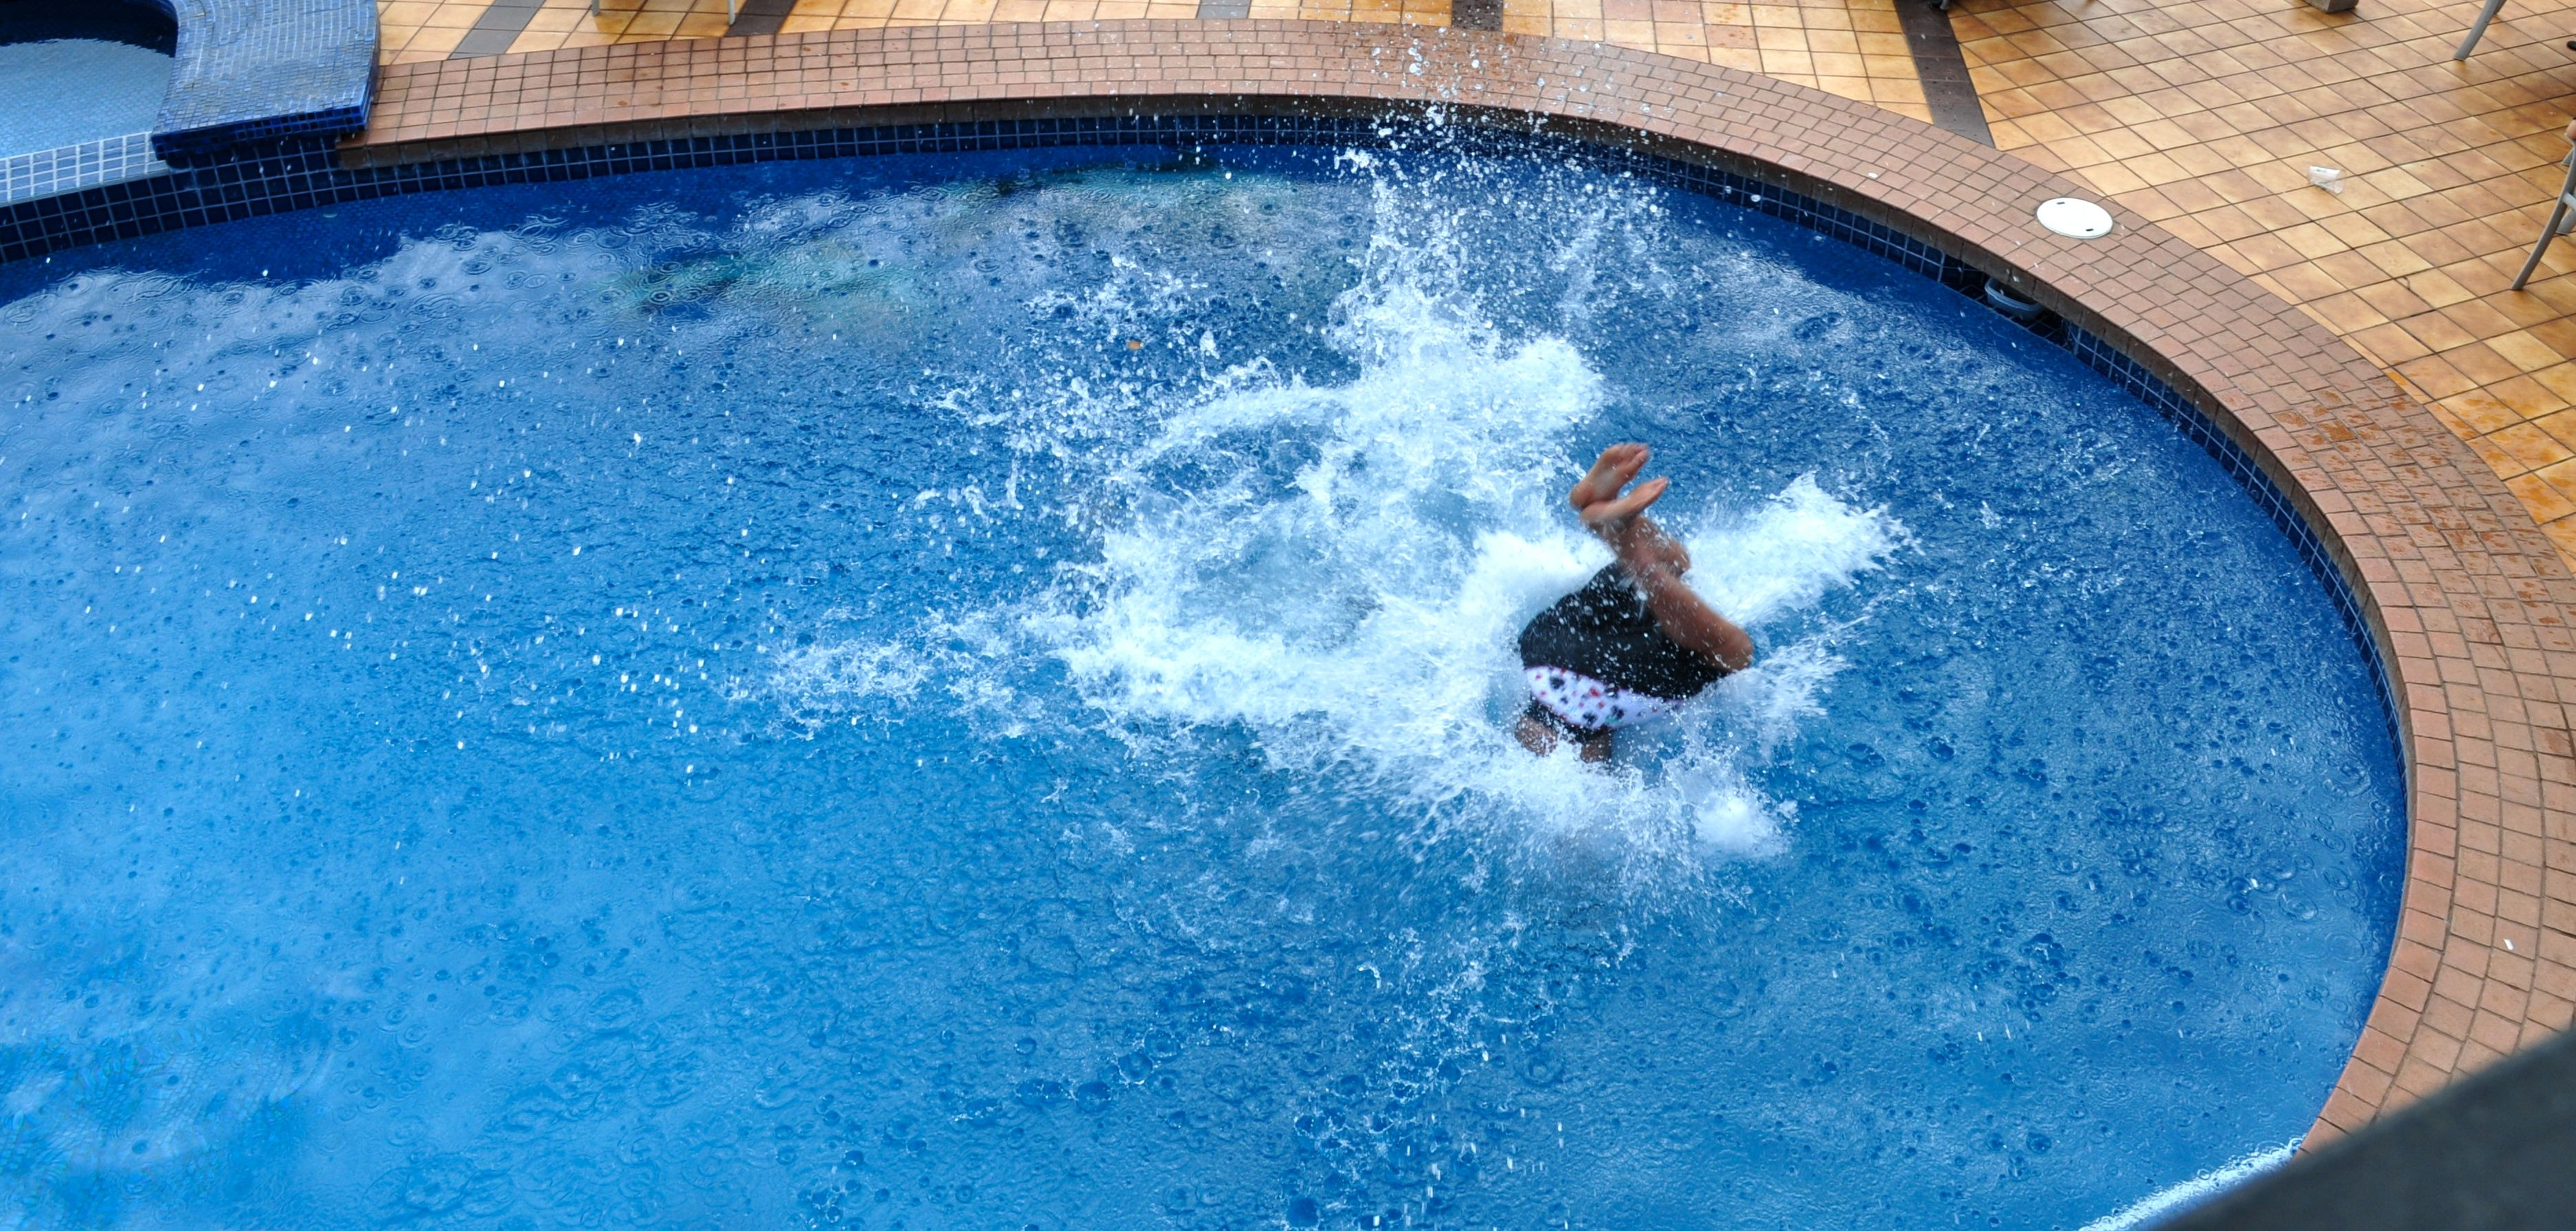 Make pool safety a priority and learn how to swim this summer.